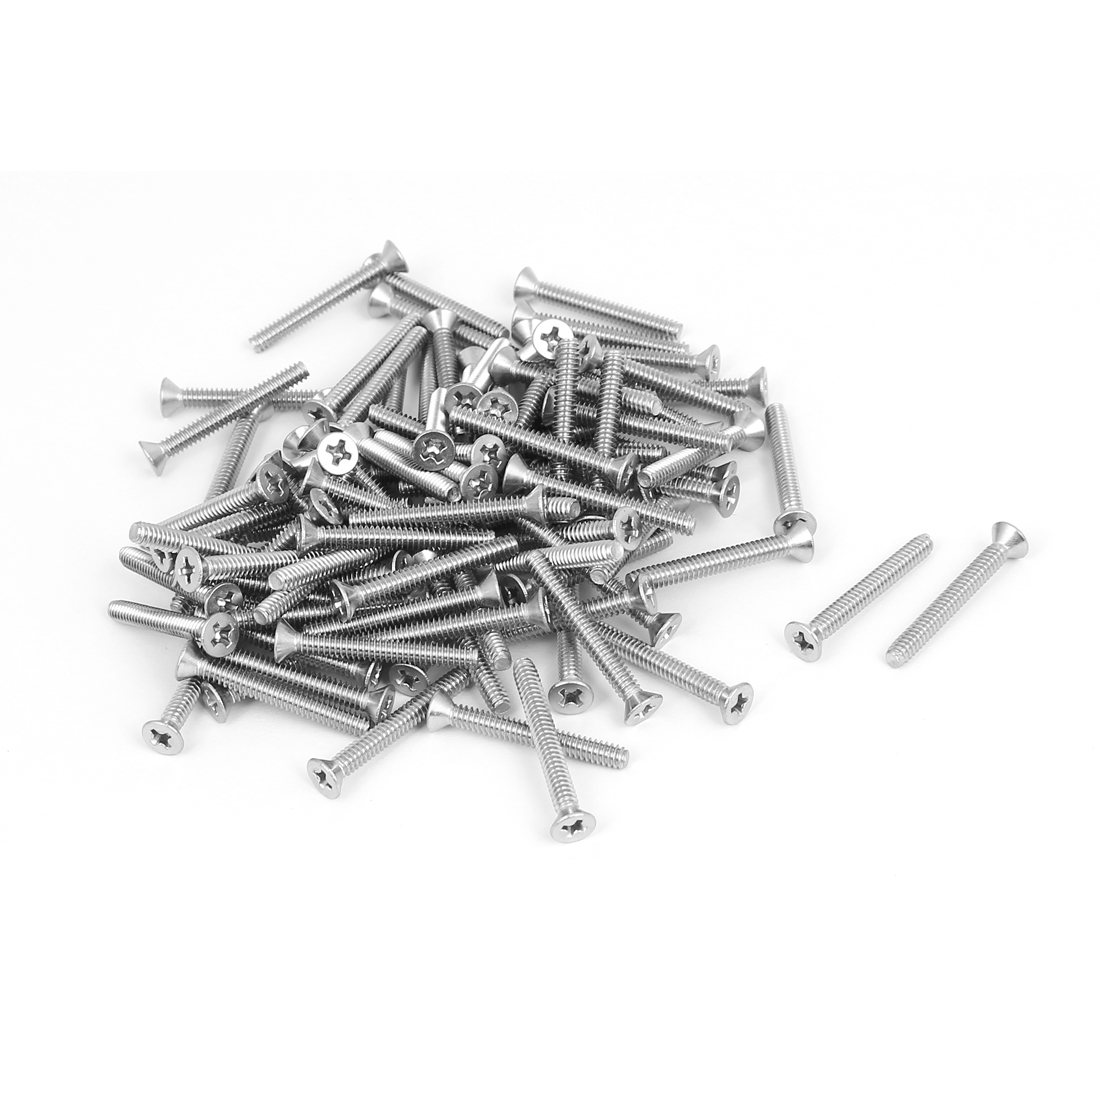 "6#-32x1-1/8"" 304 Stainless Steel Phillips Flat Countersunk Head Screws 100pcs"